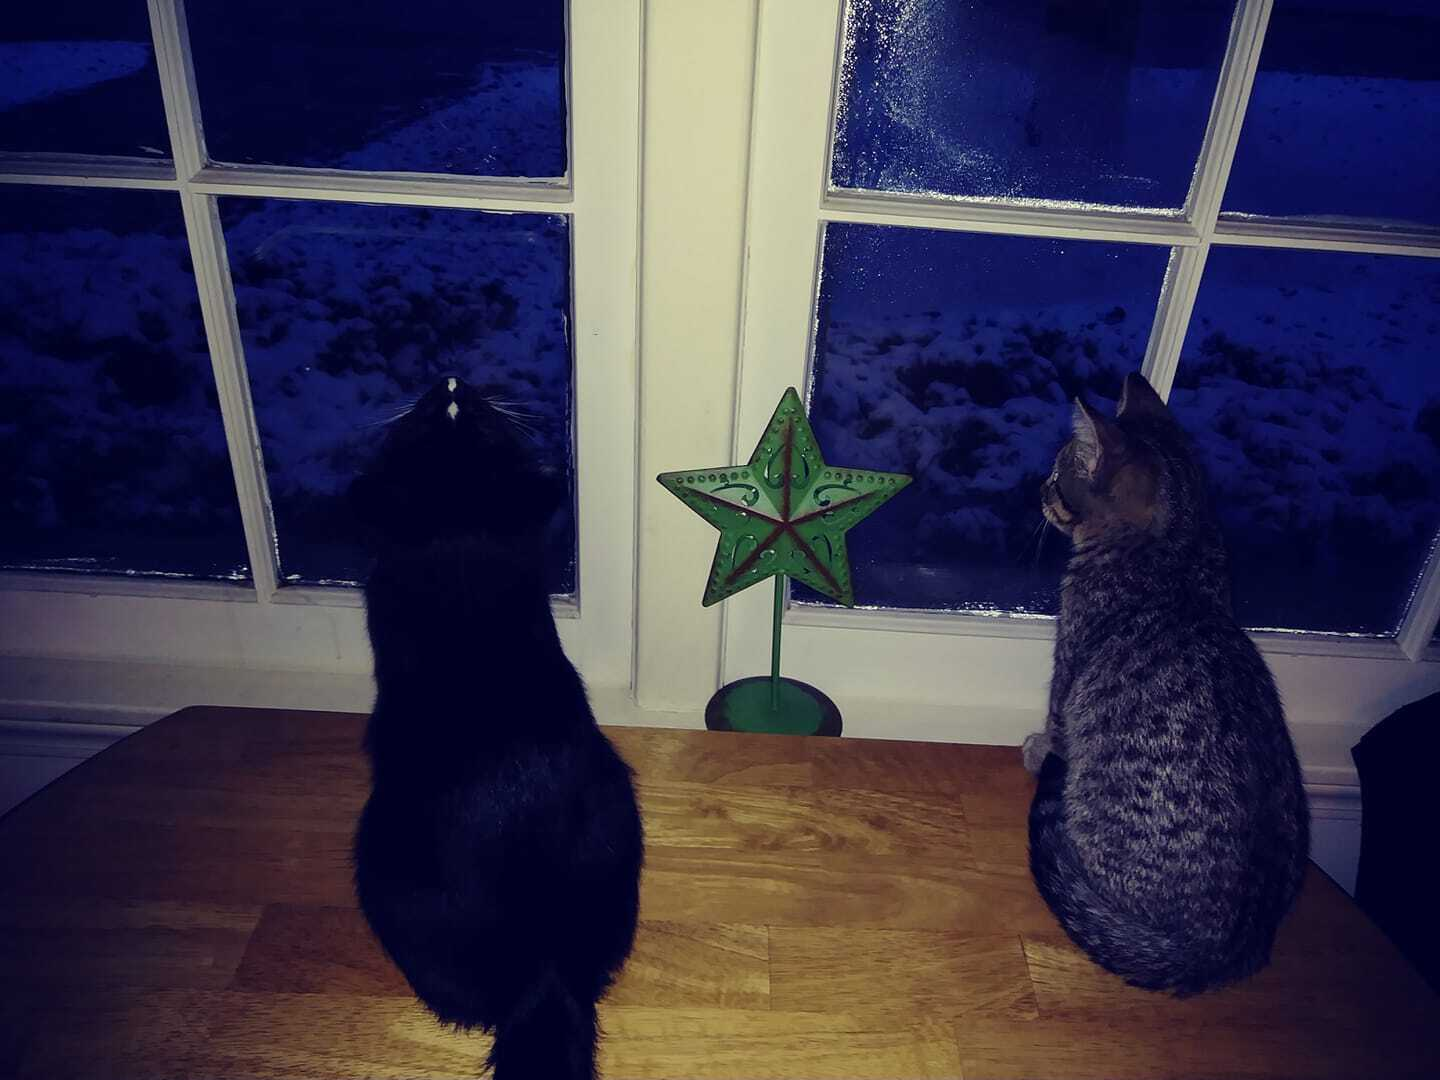 Cats with snow